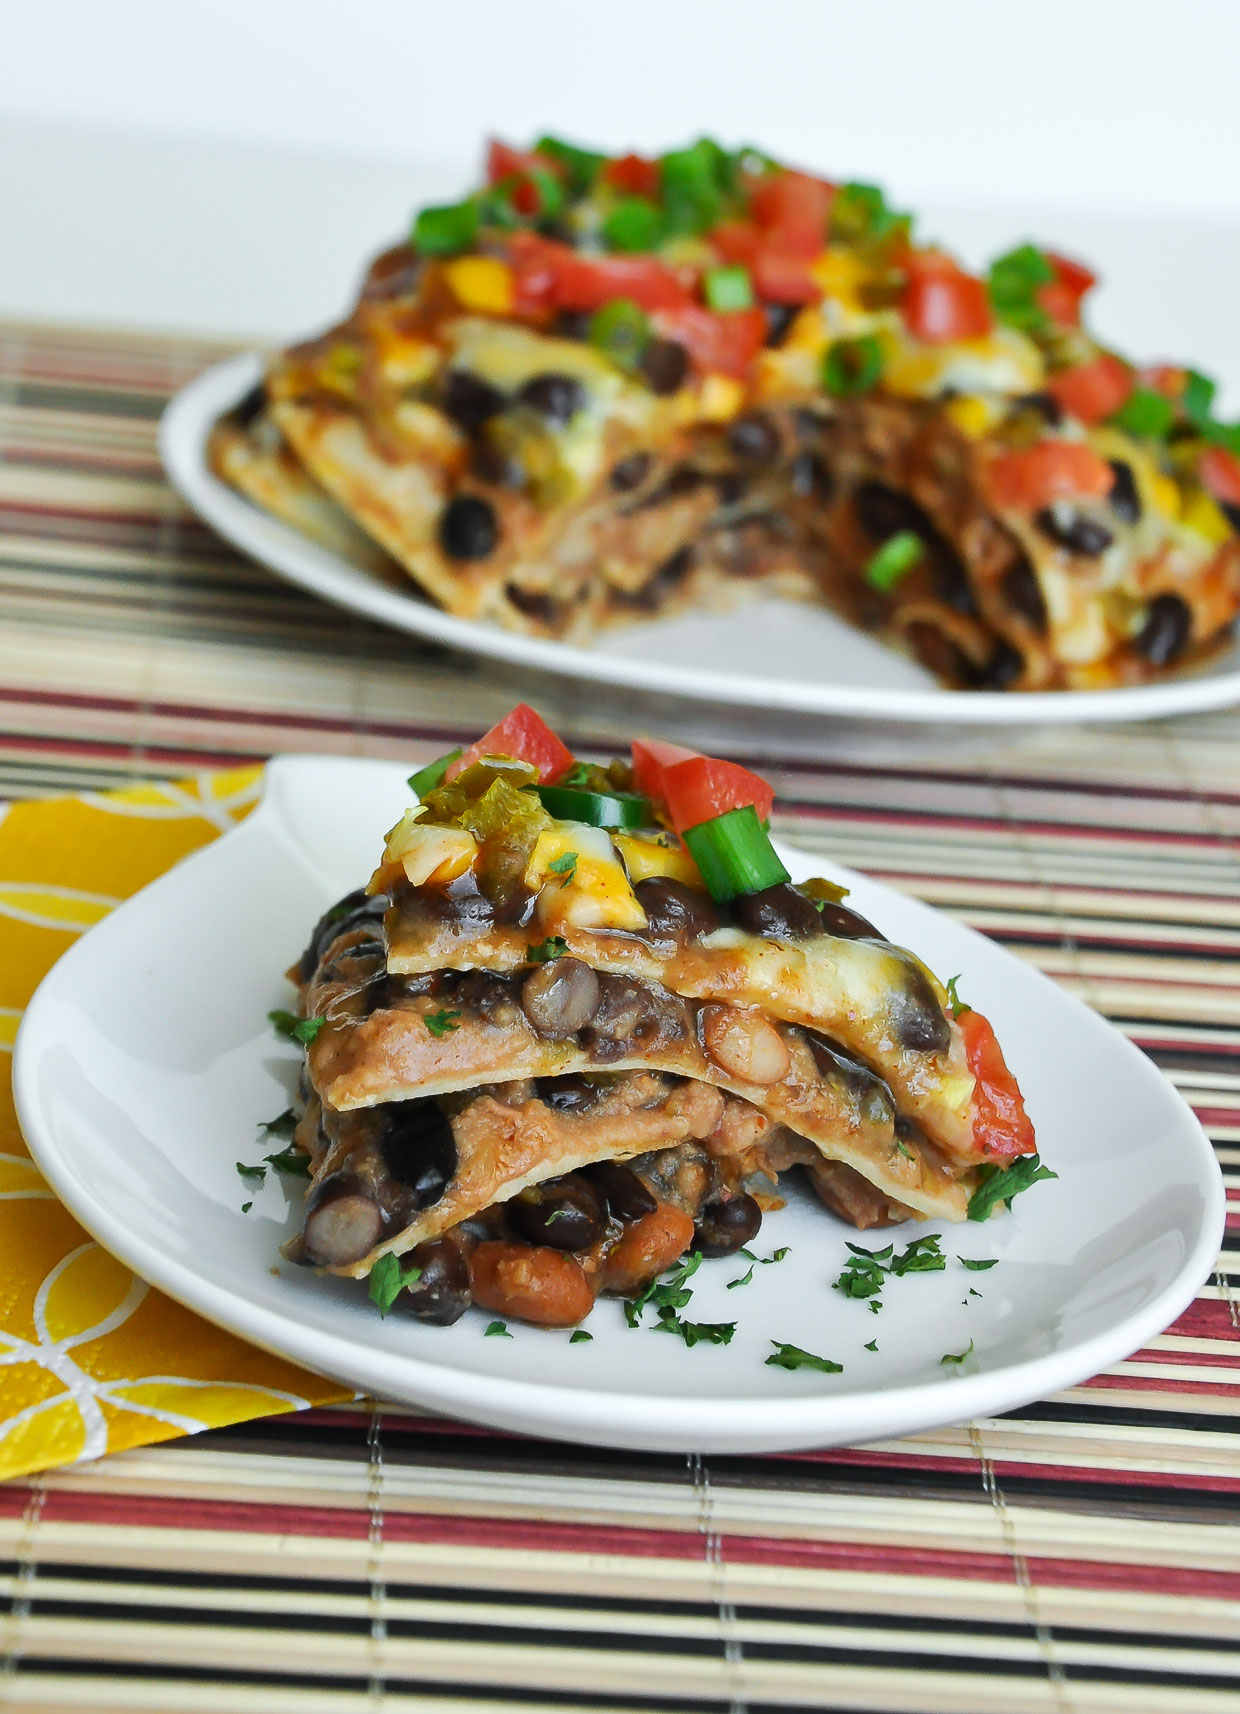 Mexican pizza lasagna vegetarian gluten free comfort food vegetarian mexican pizza lasagna recipe forumfinder Choice Image